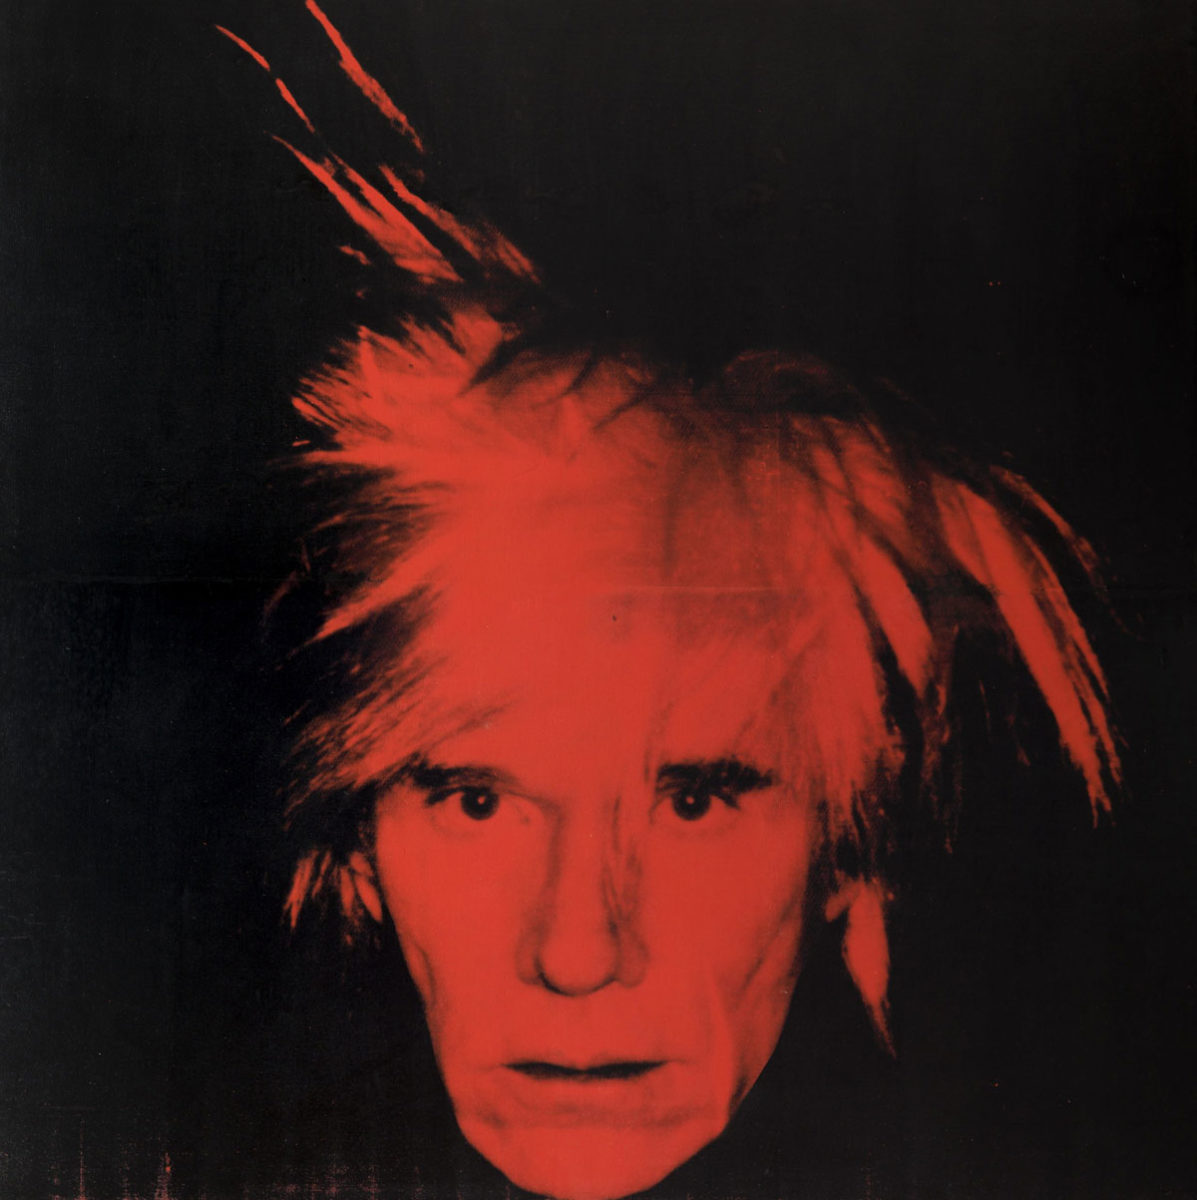 """Andy Warhol, """"Self-Portrait"""", 1986, Tate Modern. © 2020 The Andy Warhol Foundation for the Visual Arts, Inc. / Licensed by DACS, London."""